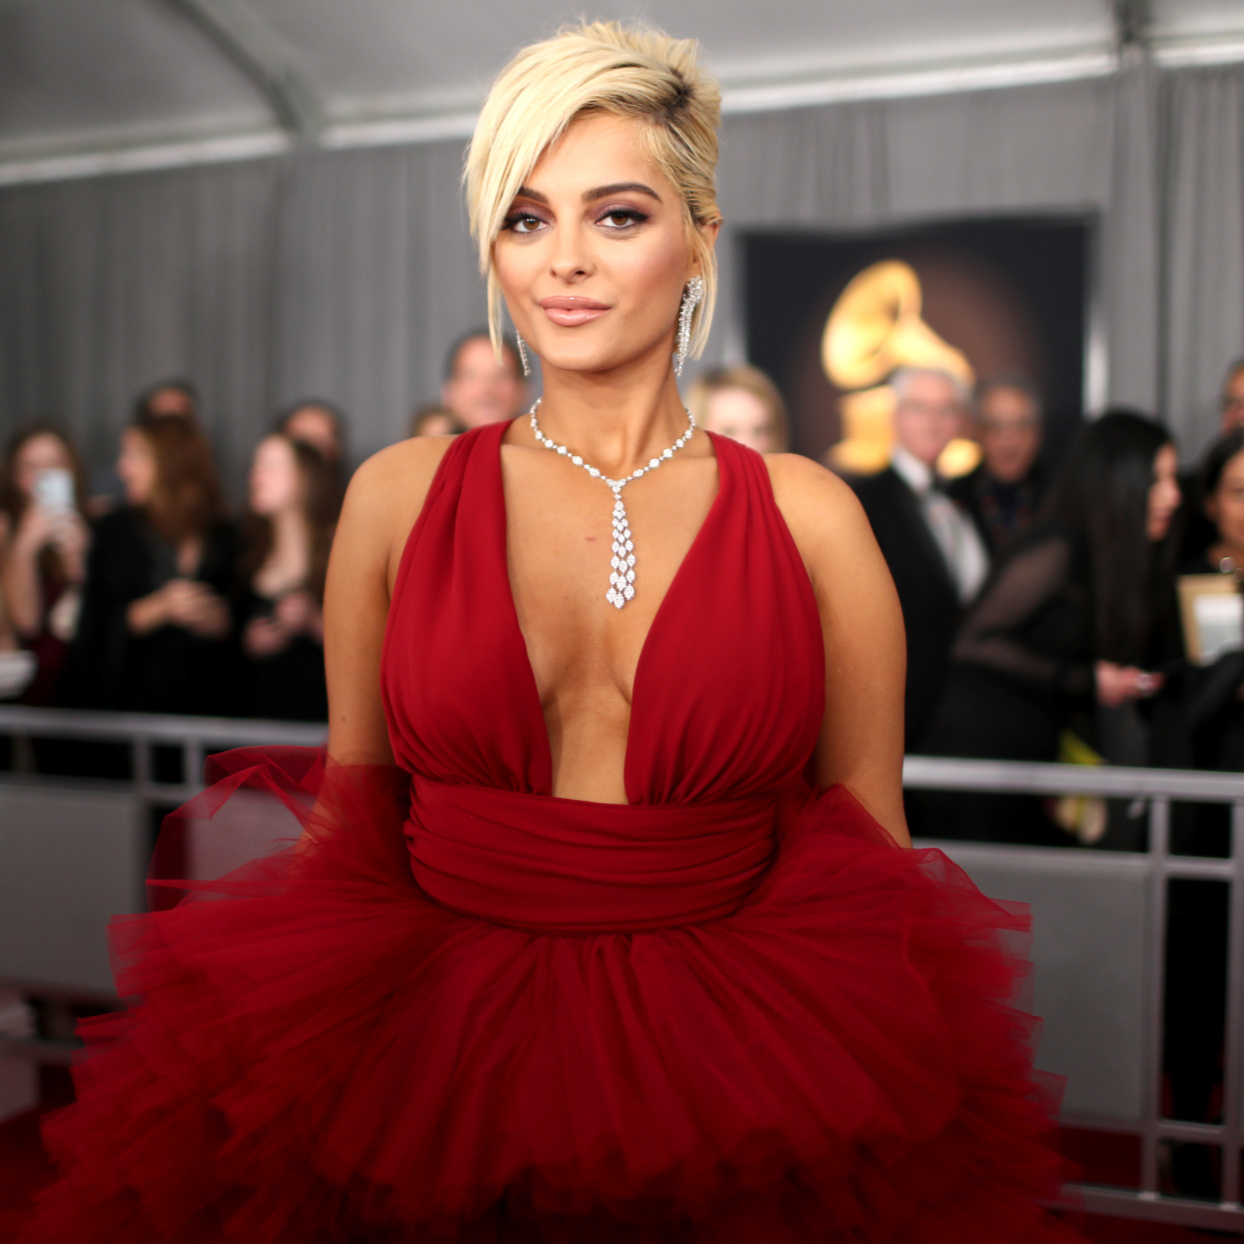 Bebe Rexha Reminds Us What Real Women Look Like with an Unedited Bikini Pic